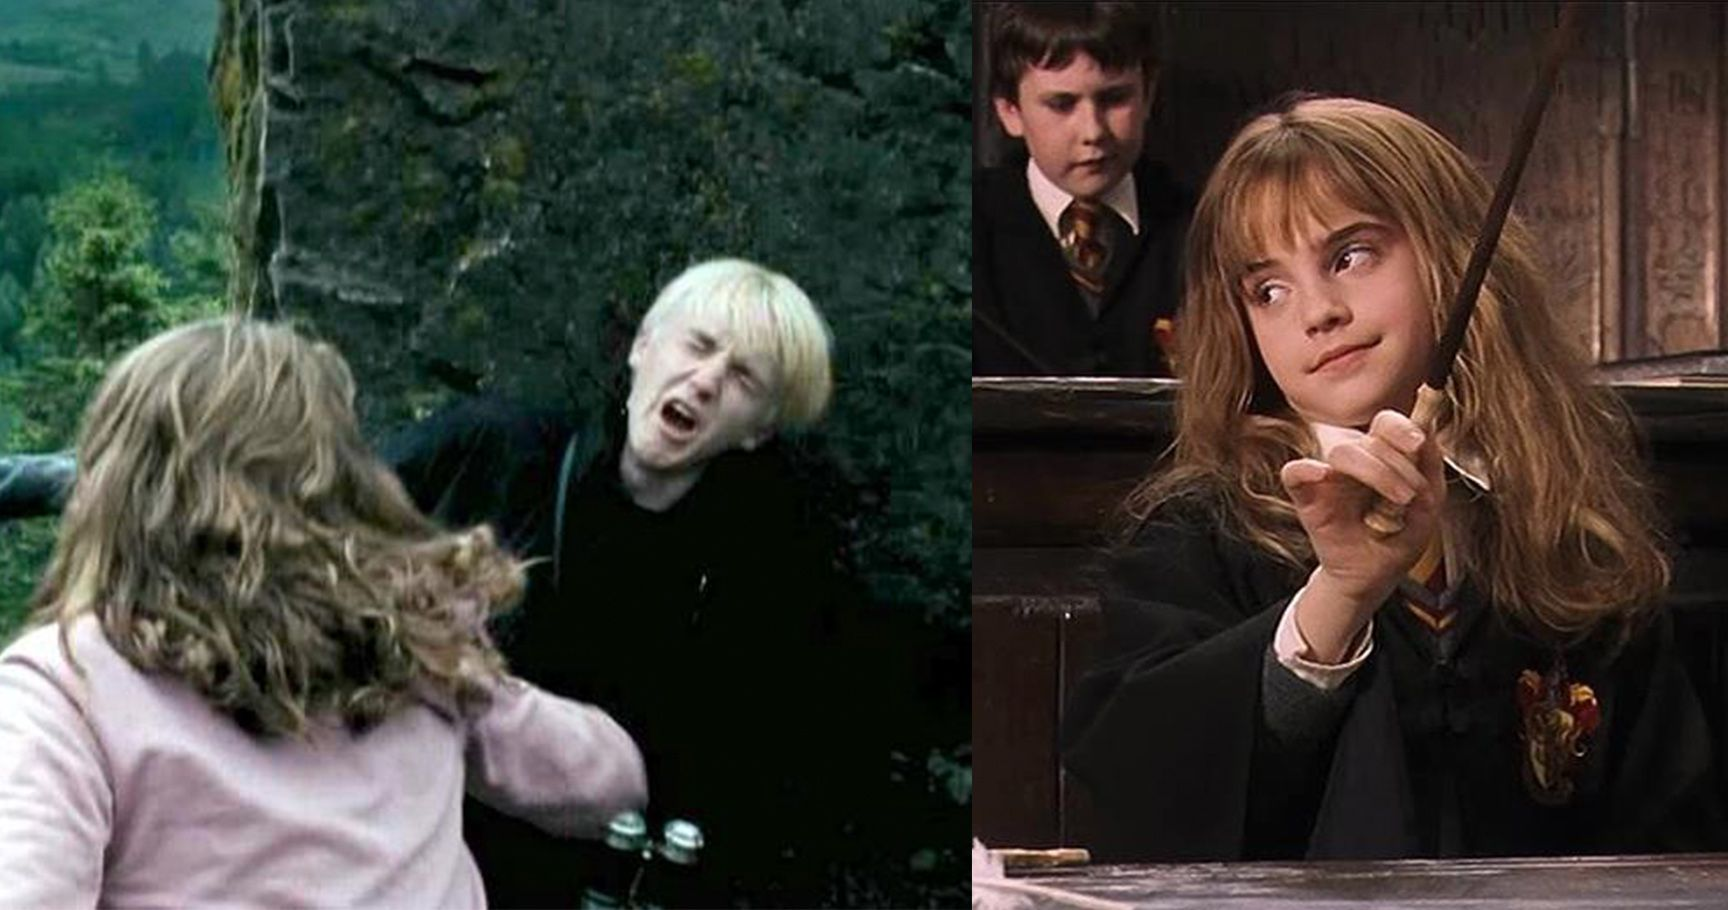 15 Most Savage Things Hermione Granger Ever Did